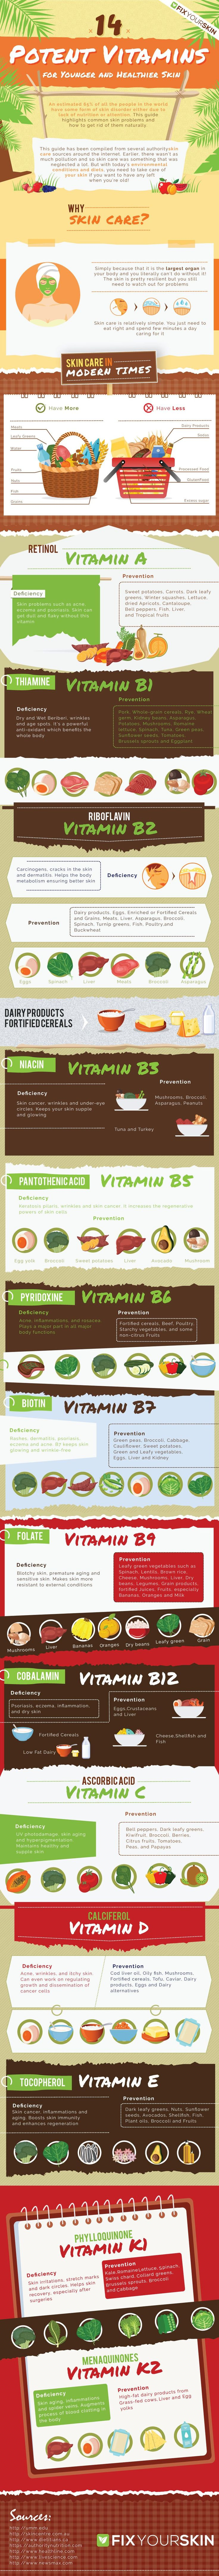 Your comprehensive vitamin guide with infographic for healthier and younger looking skin from the skin health experts at Fix Your Skin #fixyouskin #skincare #greatskin #flawlessskin #skin #beauty #glowingskin #healthyskin #skincaretips #skin